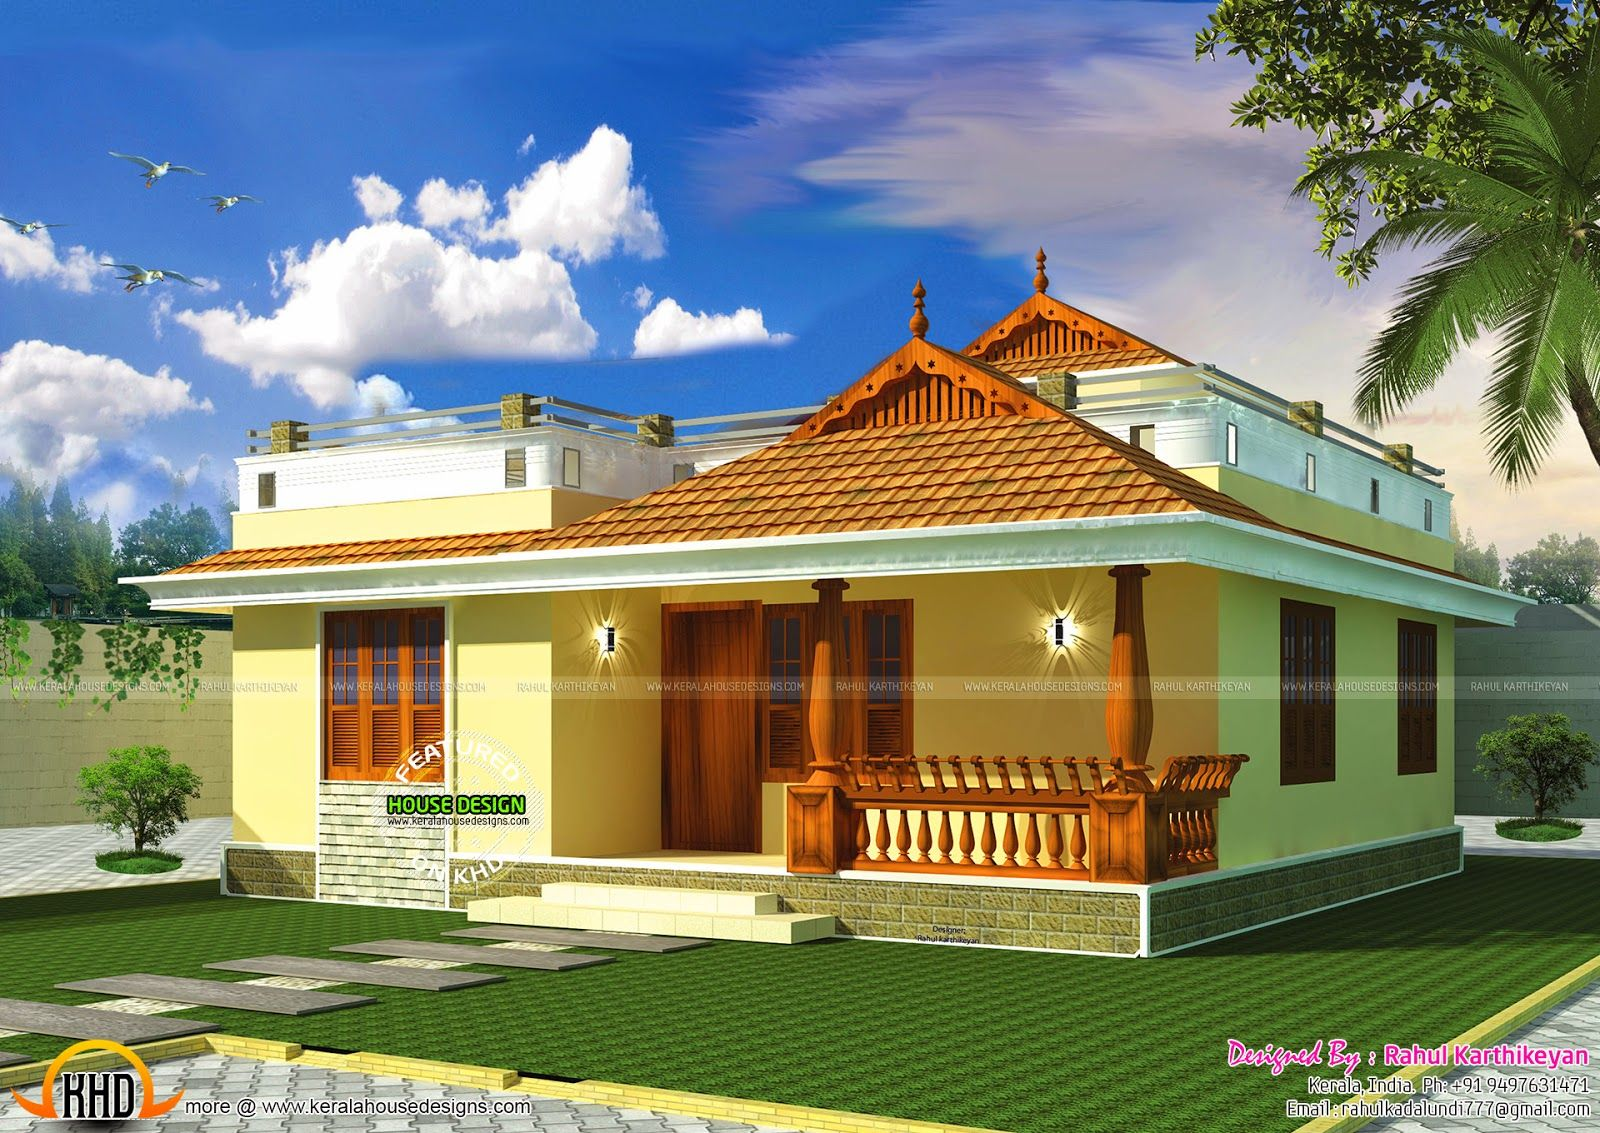 Small Kerala Style Home Kerala House Design Small House Design Kerala Village House Design